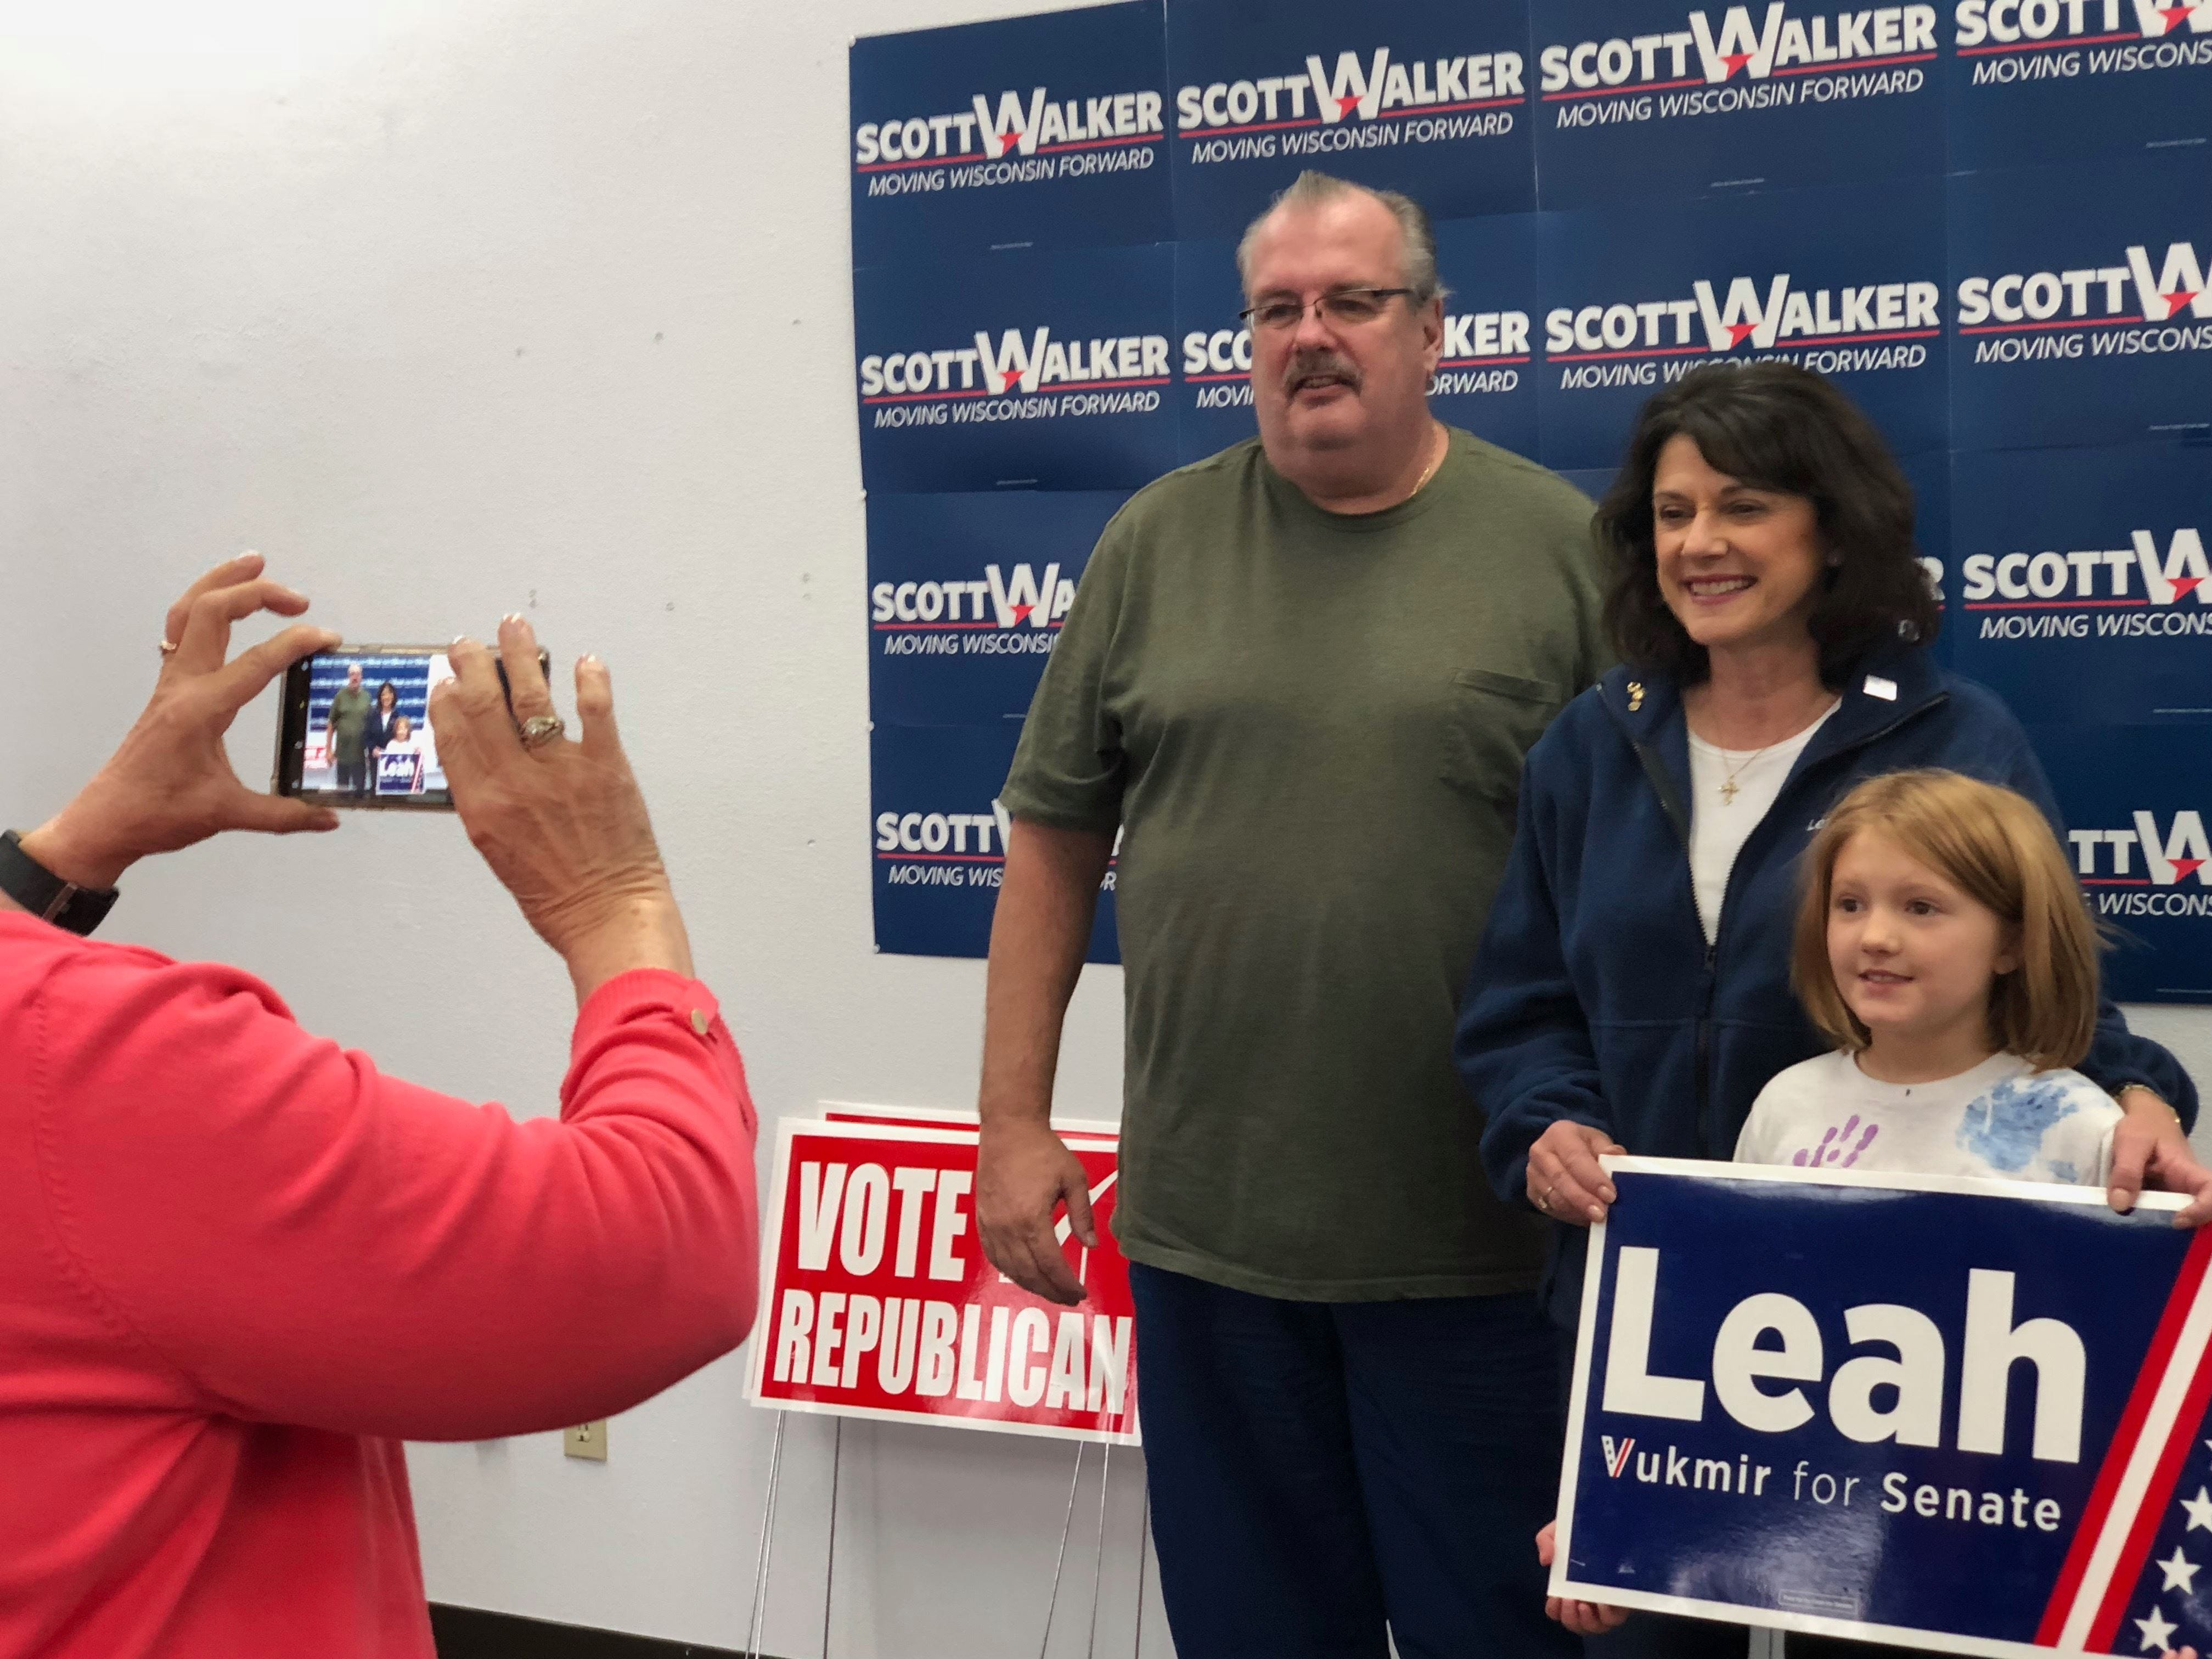 U.S. Senate candidate Leah Vukmir poses with supporters Nov. 5, 2018, at the Marathon County Republican Campaign Headquarters in Weston.